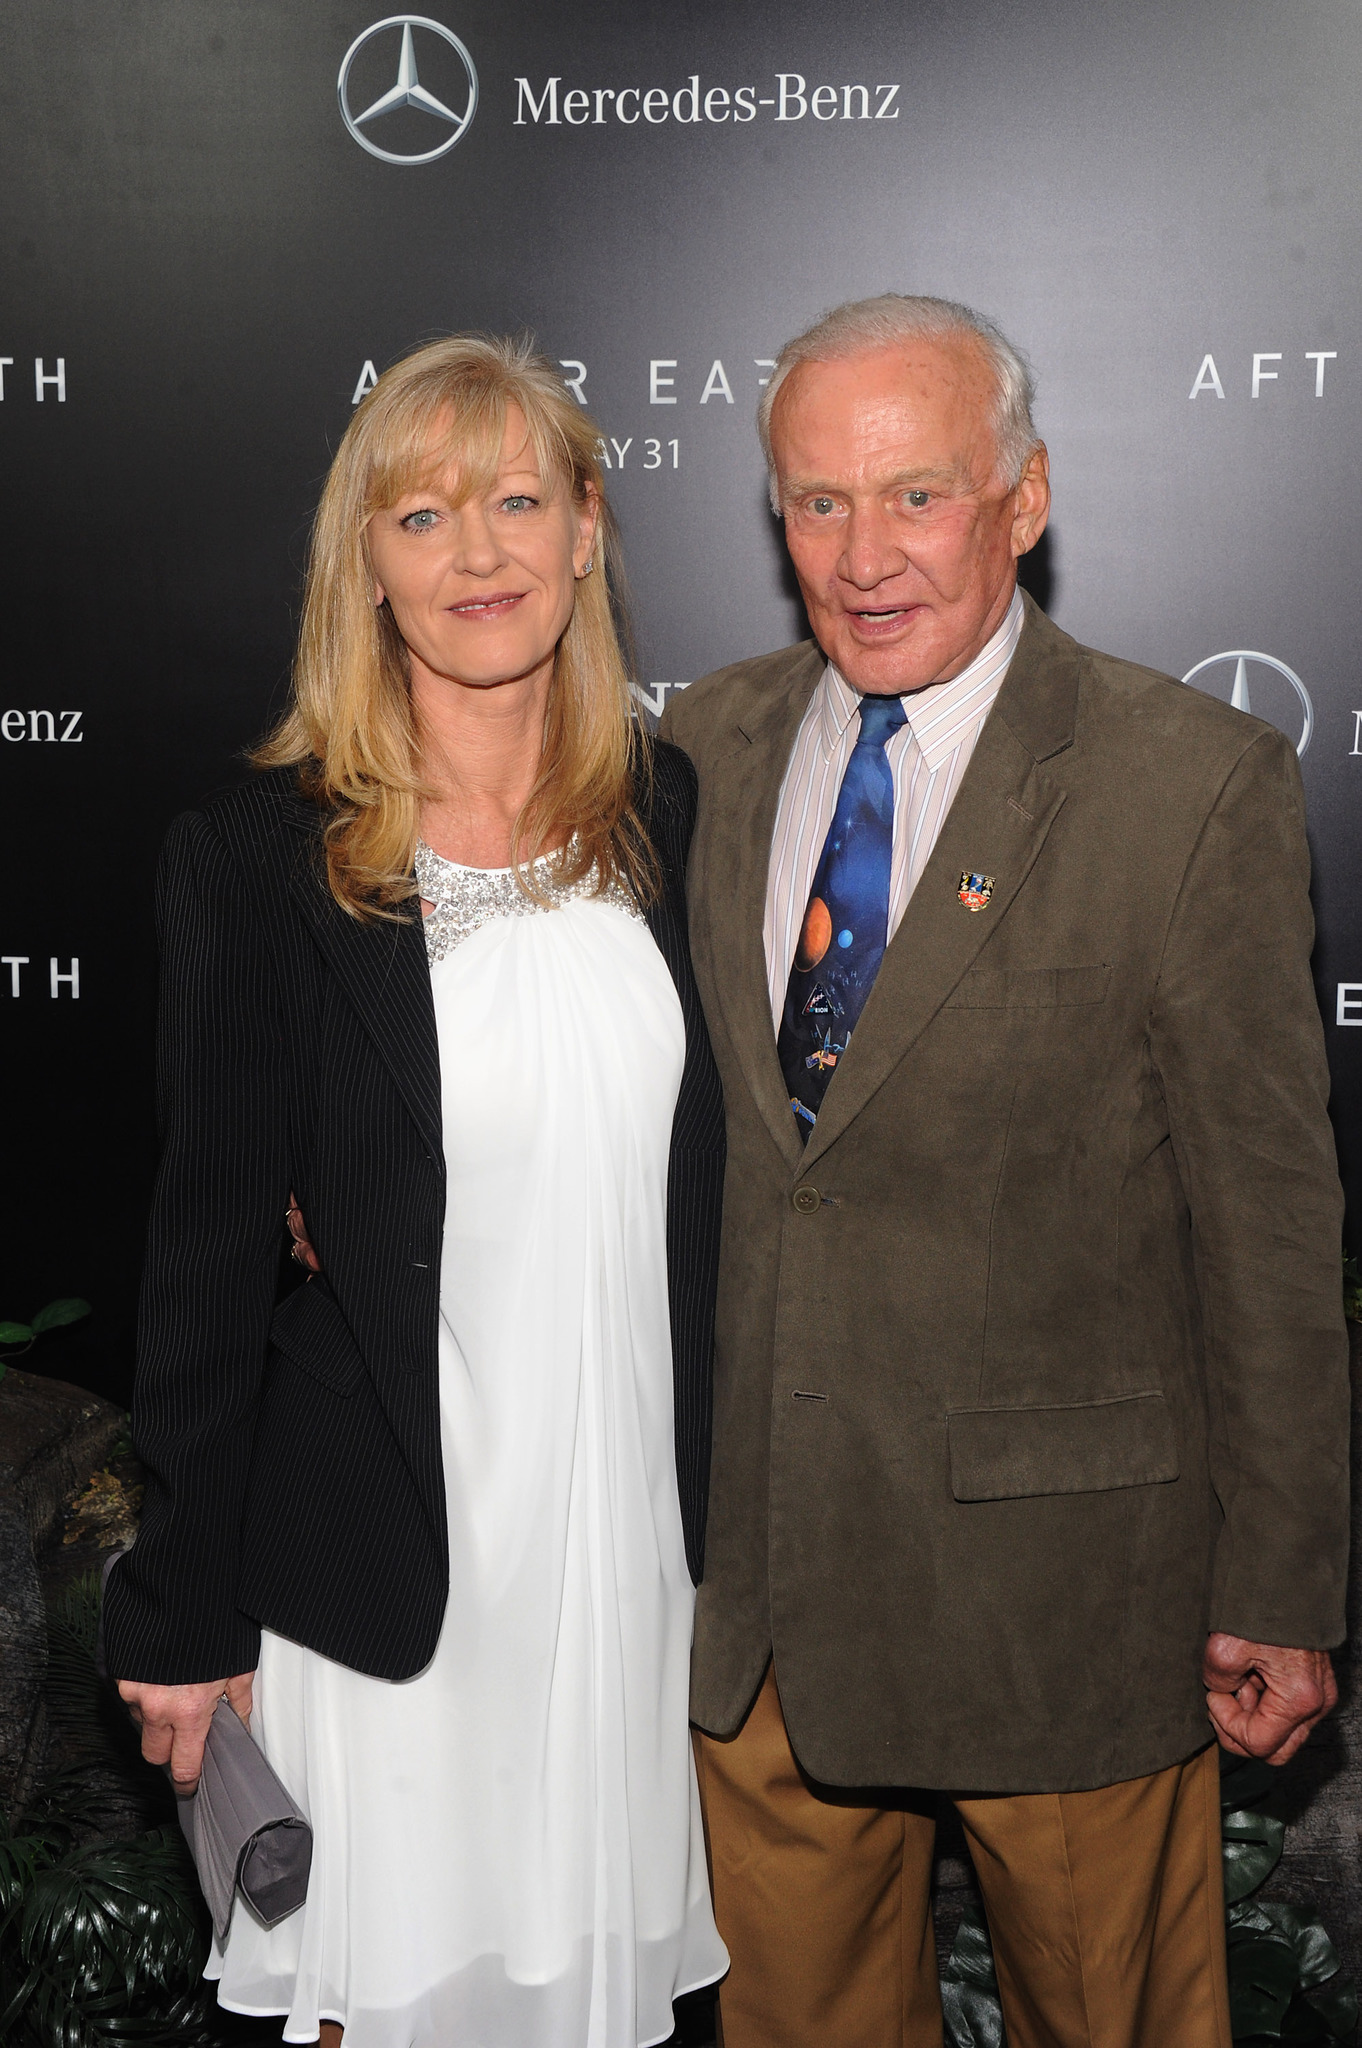 Buzz Aldrin at an event for After Earth (2013)